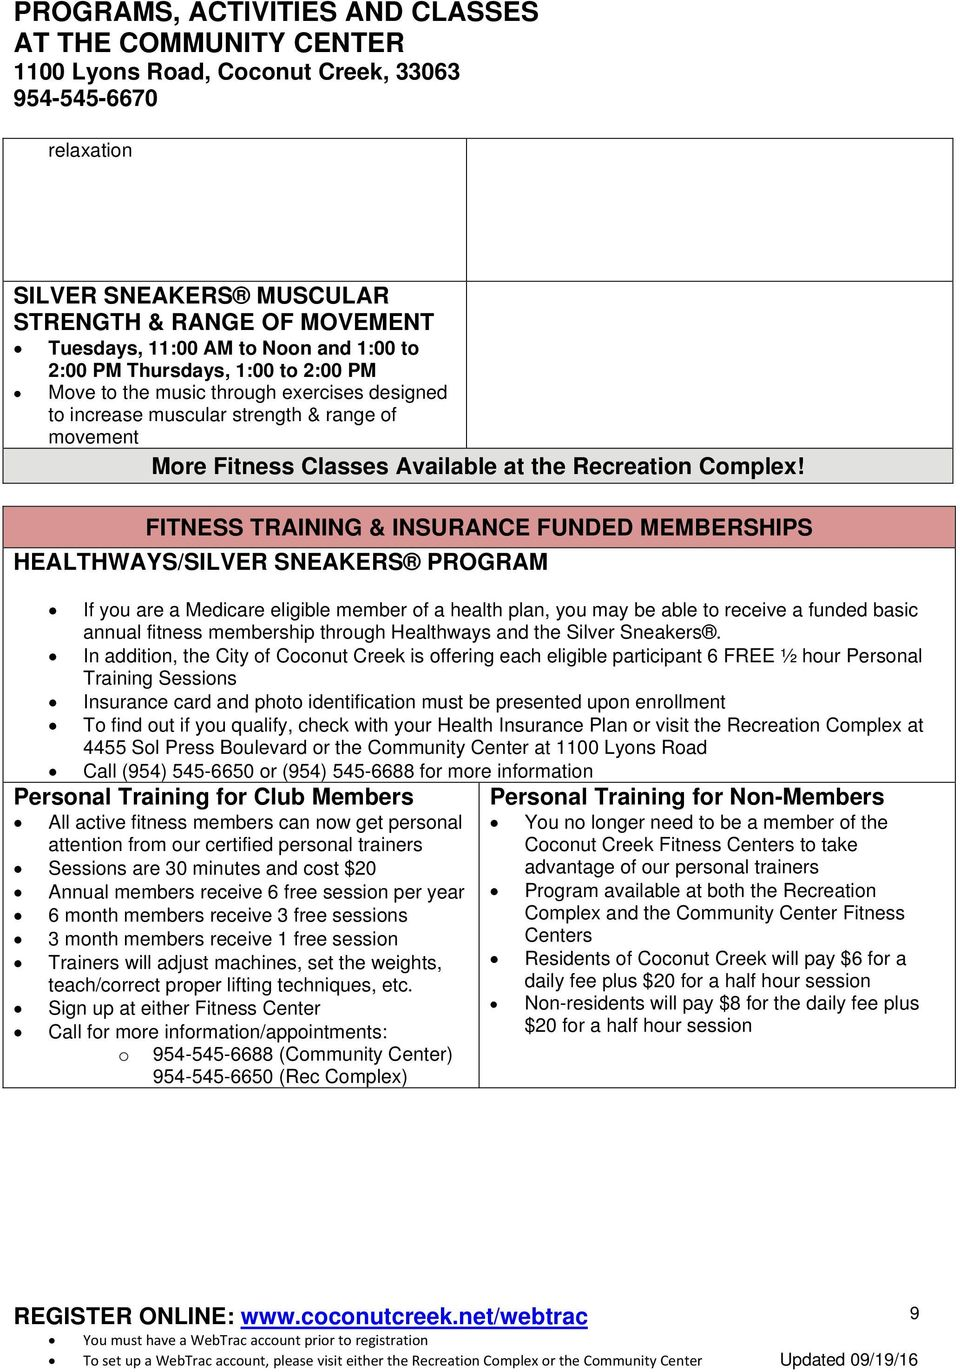 FITNESS TRAINING & INSURANCE FUNDED MEMBERSHIPS HEALTHWAYS/SILVER SNEAKERS PROGRAM If you are a Medicare eligible member of a health plan, you may be able to receive a funded basic annual fitness